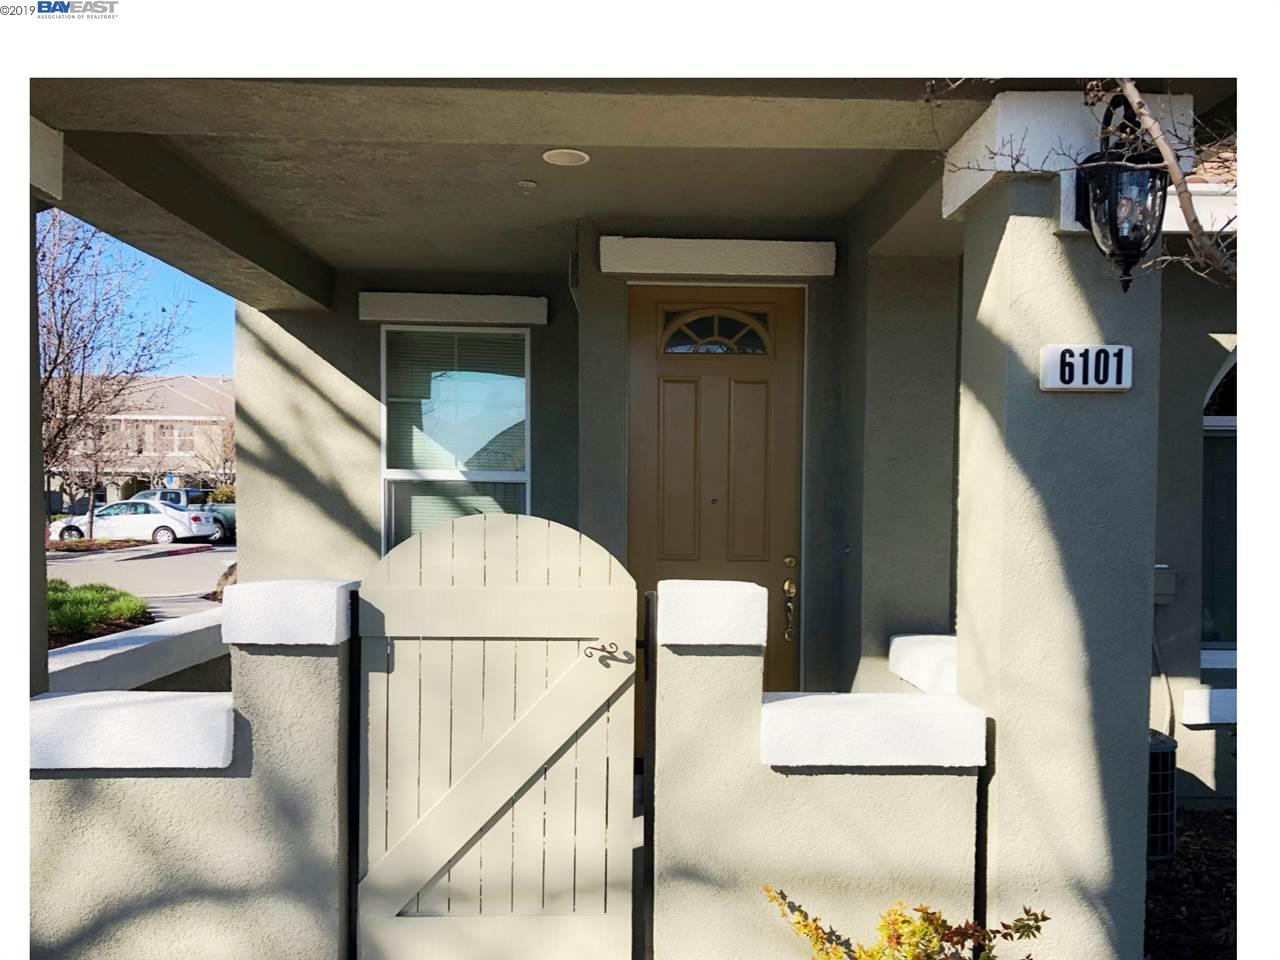 6101 Forget Me Not, LIVERMORE, CA 94551